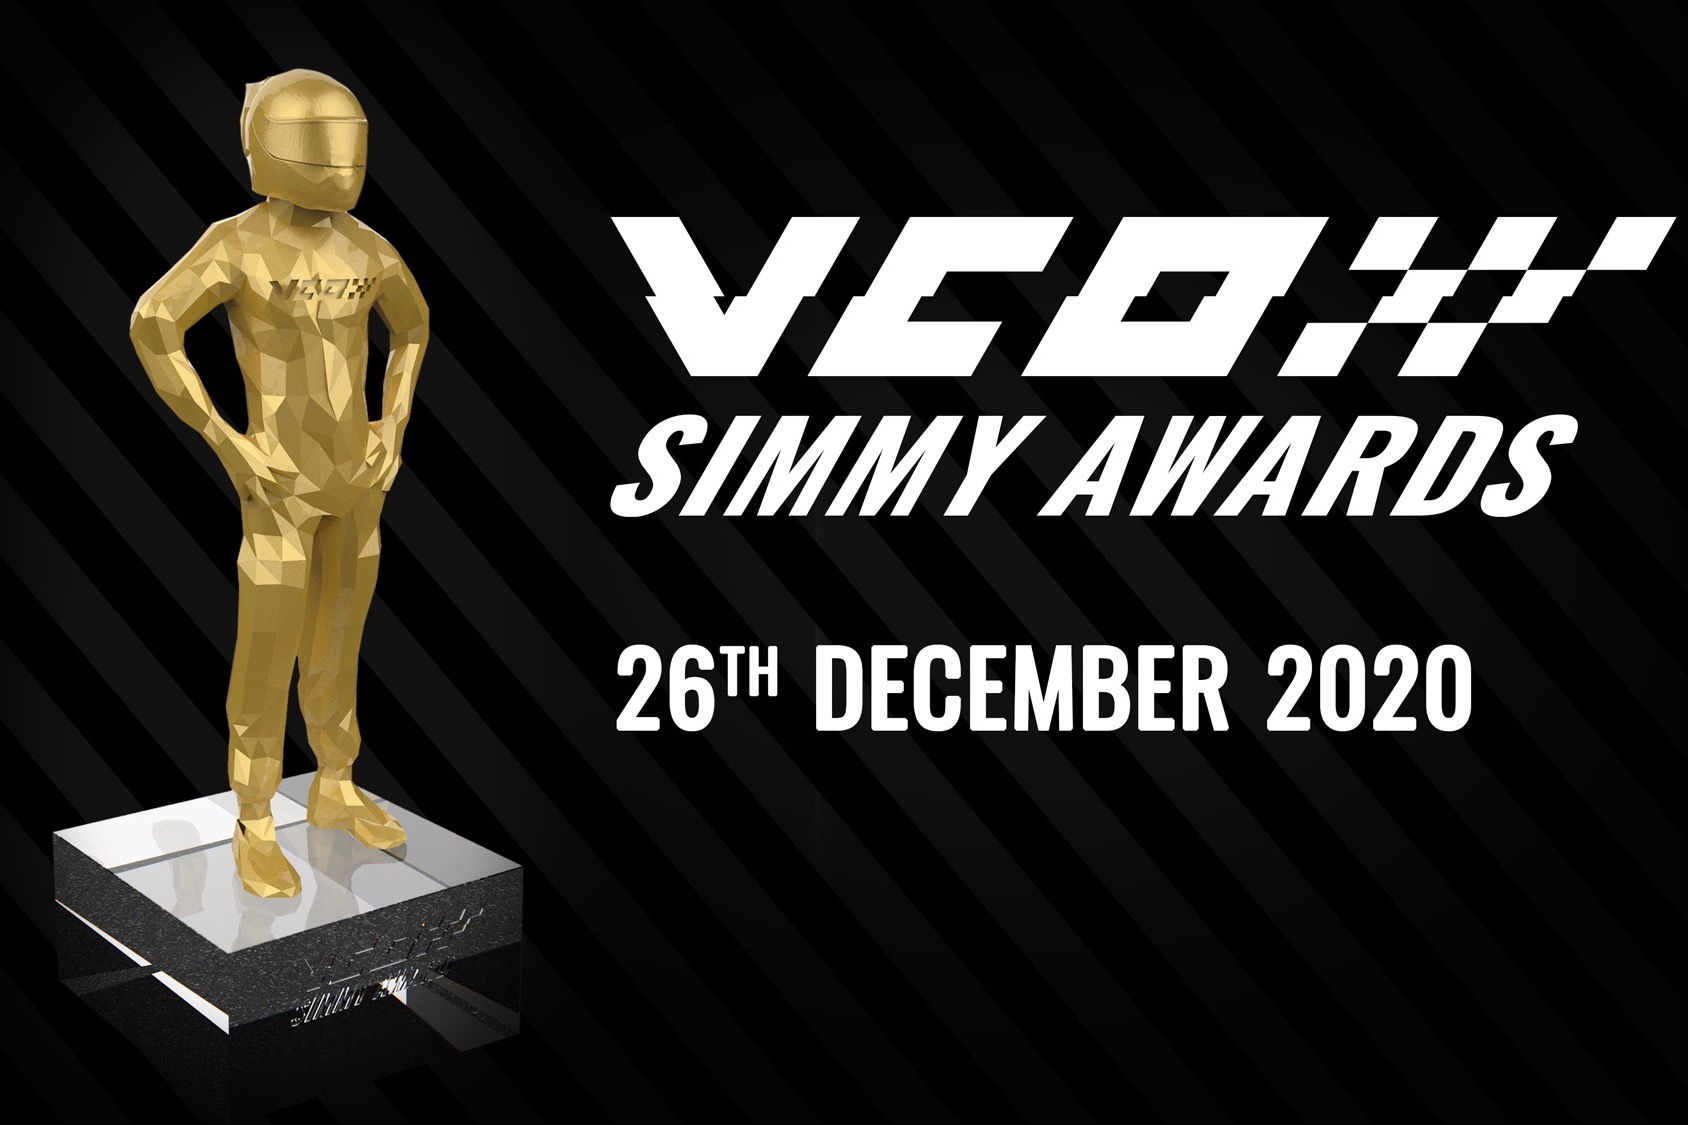 Vco Simmy Awards Pic